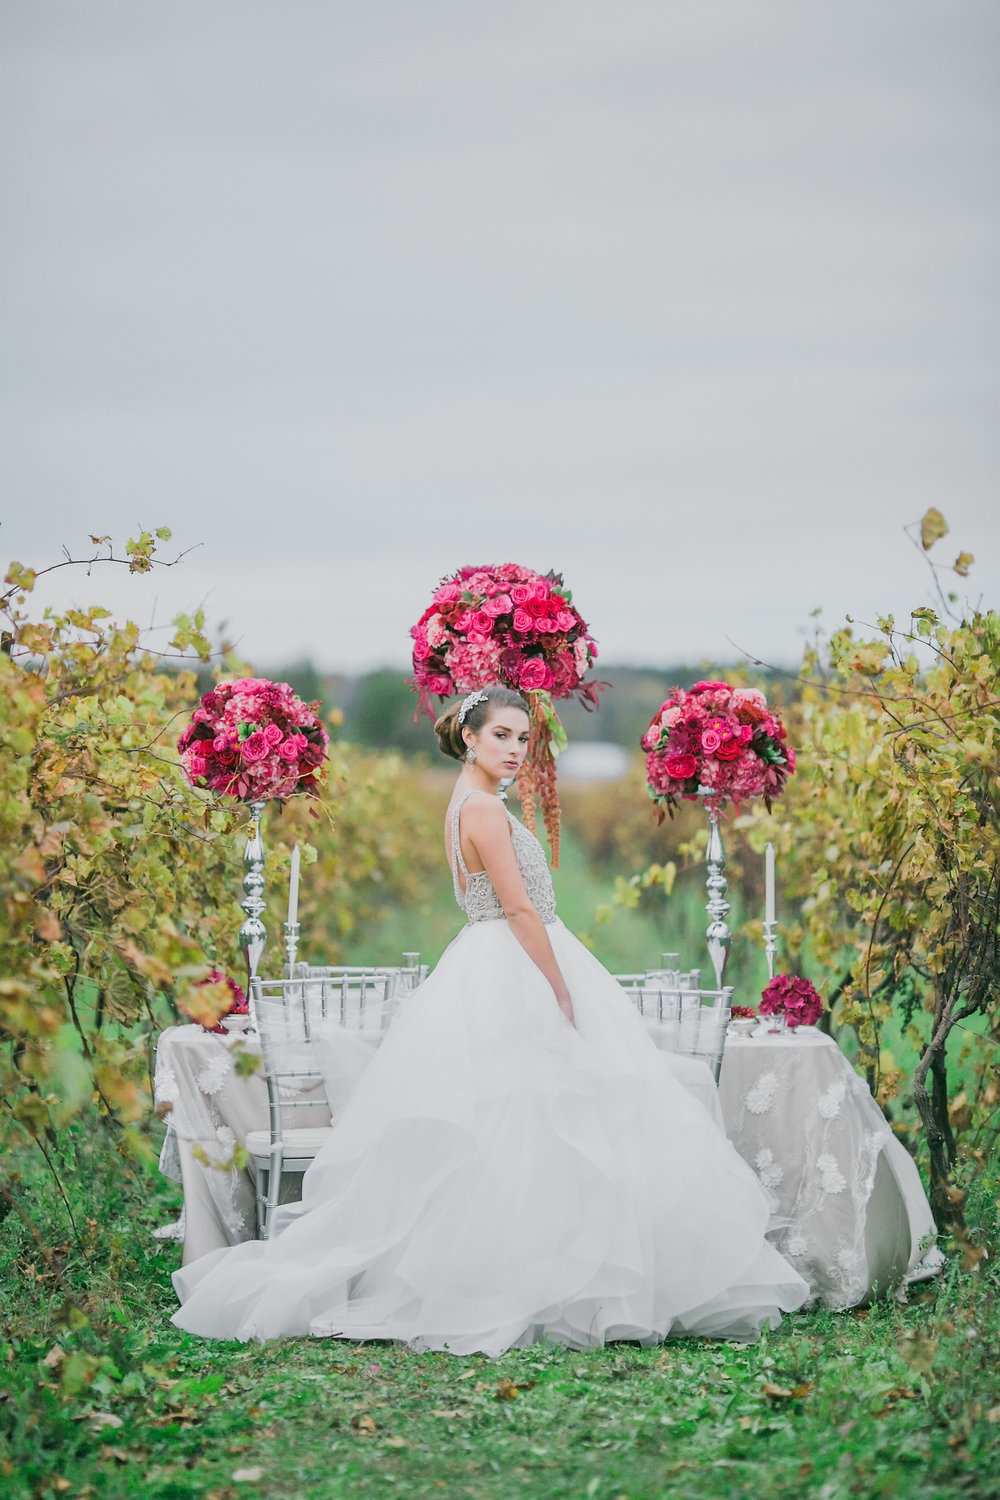 Phoebe Lo Events Toronto Wedding - Willow Springs Winery Wedluxe Creative 001.jpg